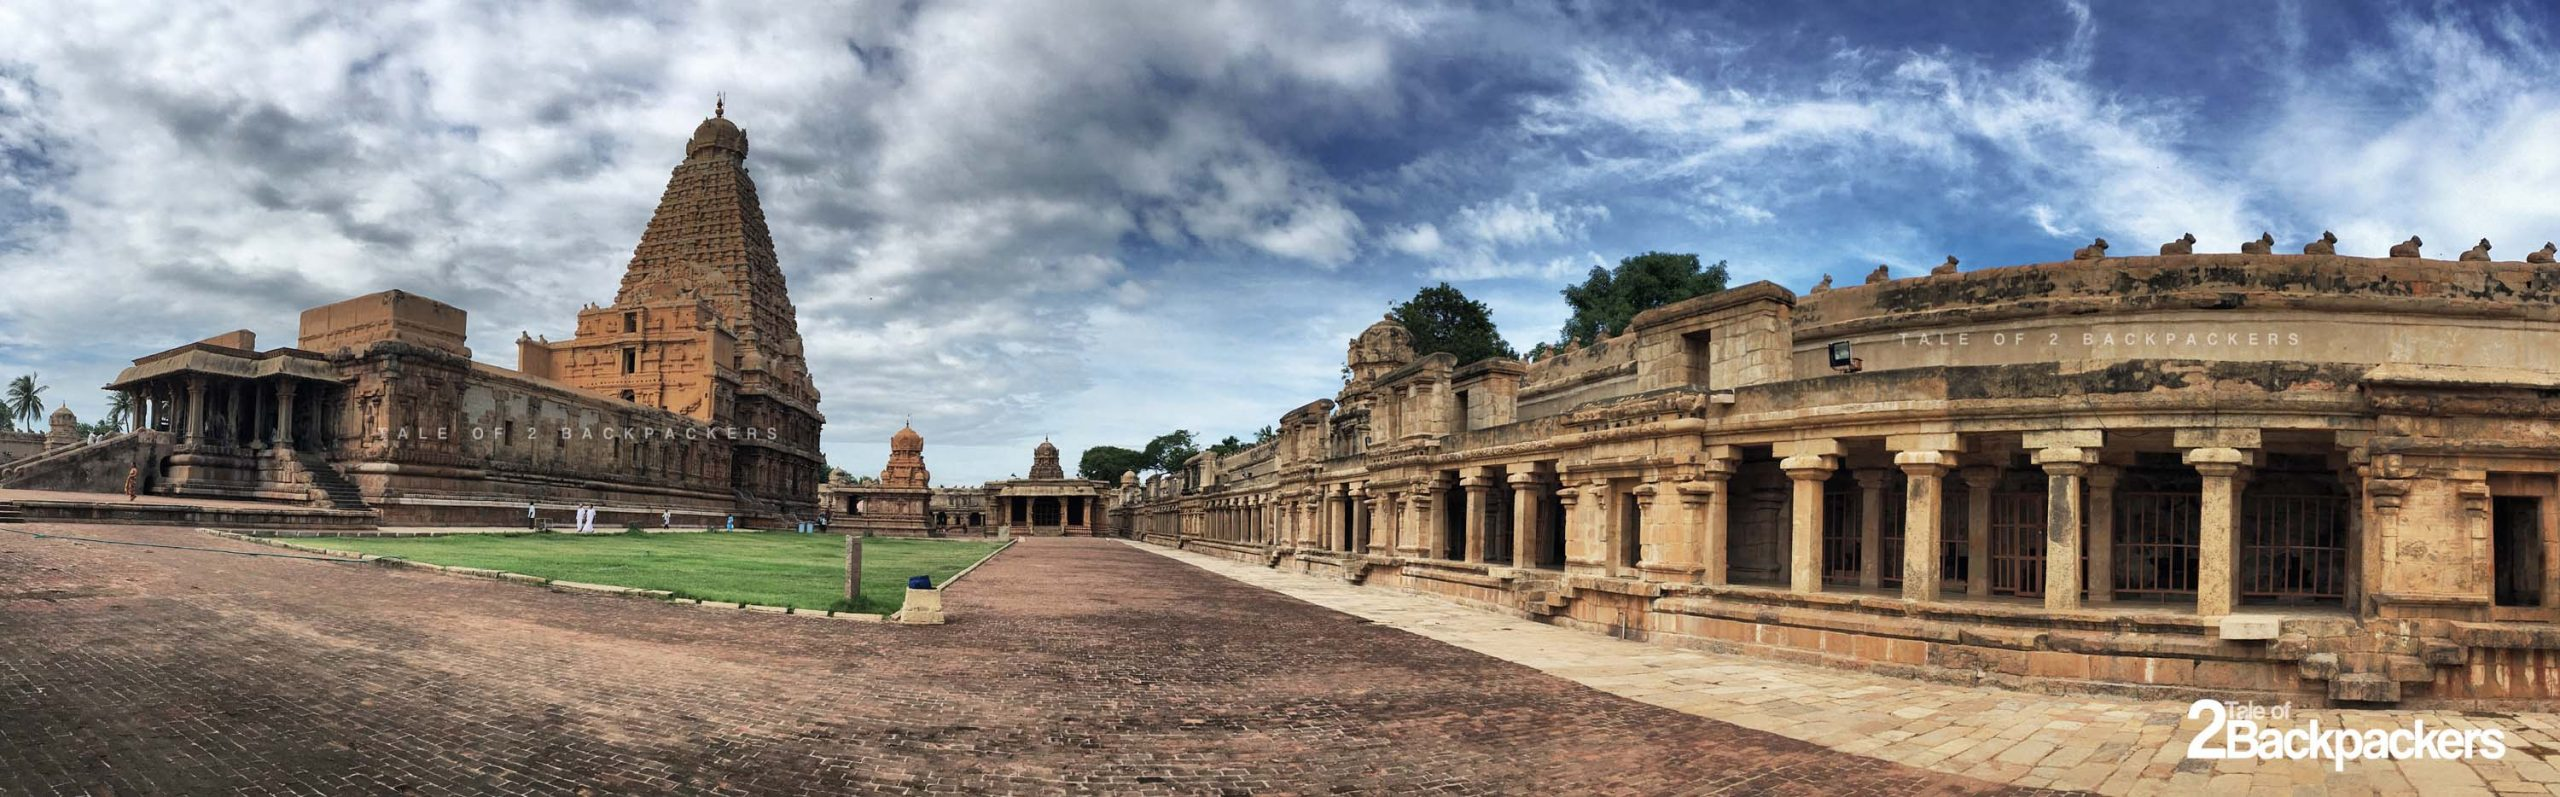 Panoramic view of the Thanjavur Big Temple